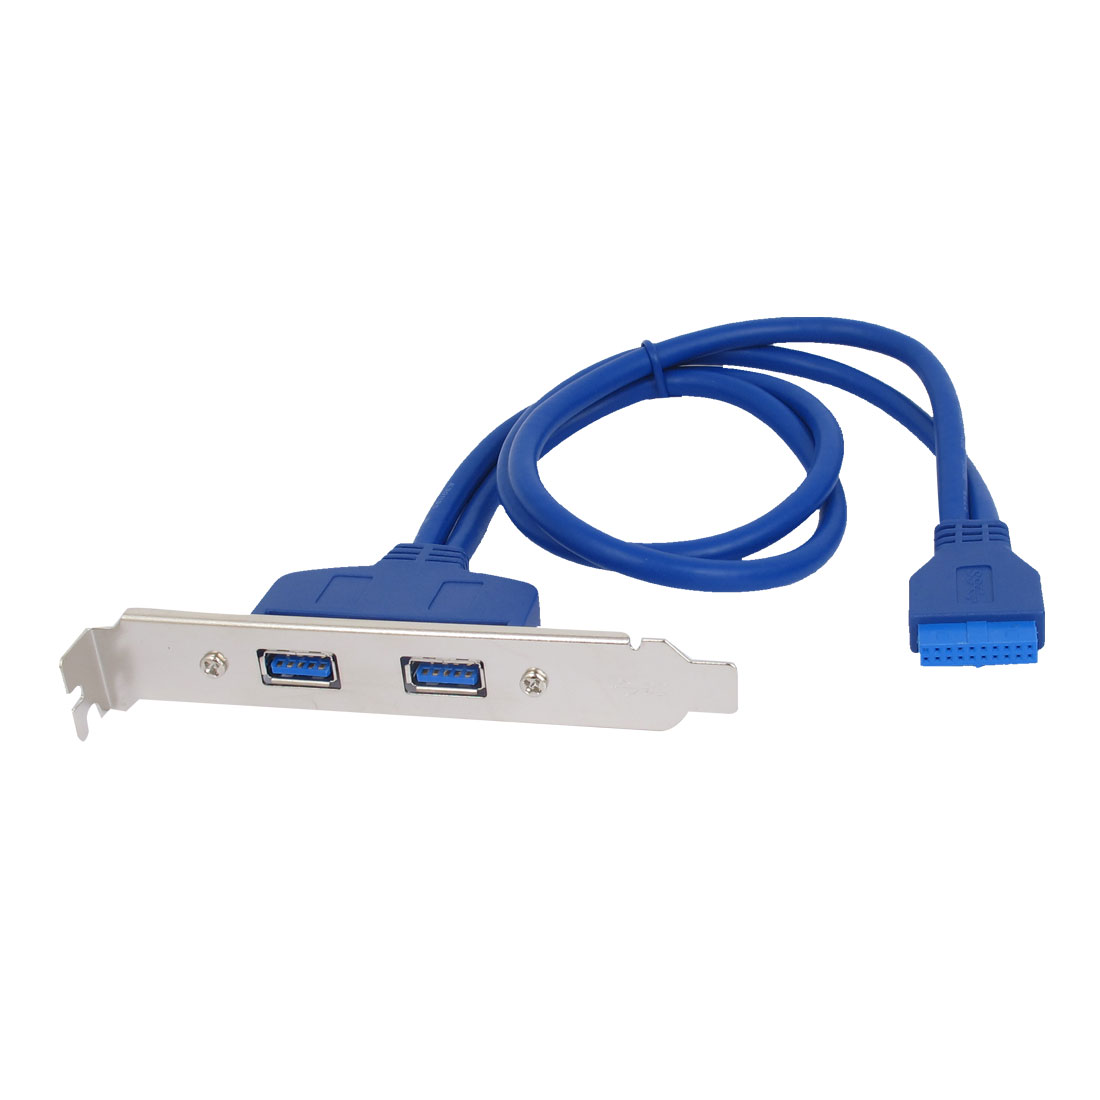 Blue 2 Port USB 3.0 A Female to 20 Pin Female Header PC Motherboard Rear Panel Expansion Bracket Host Cable Adapter